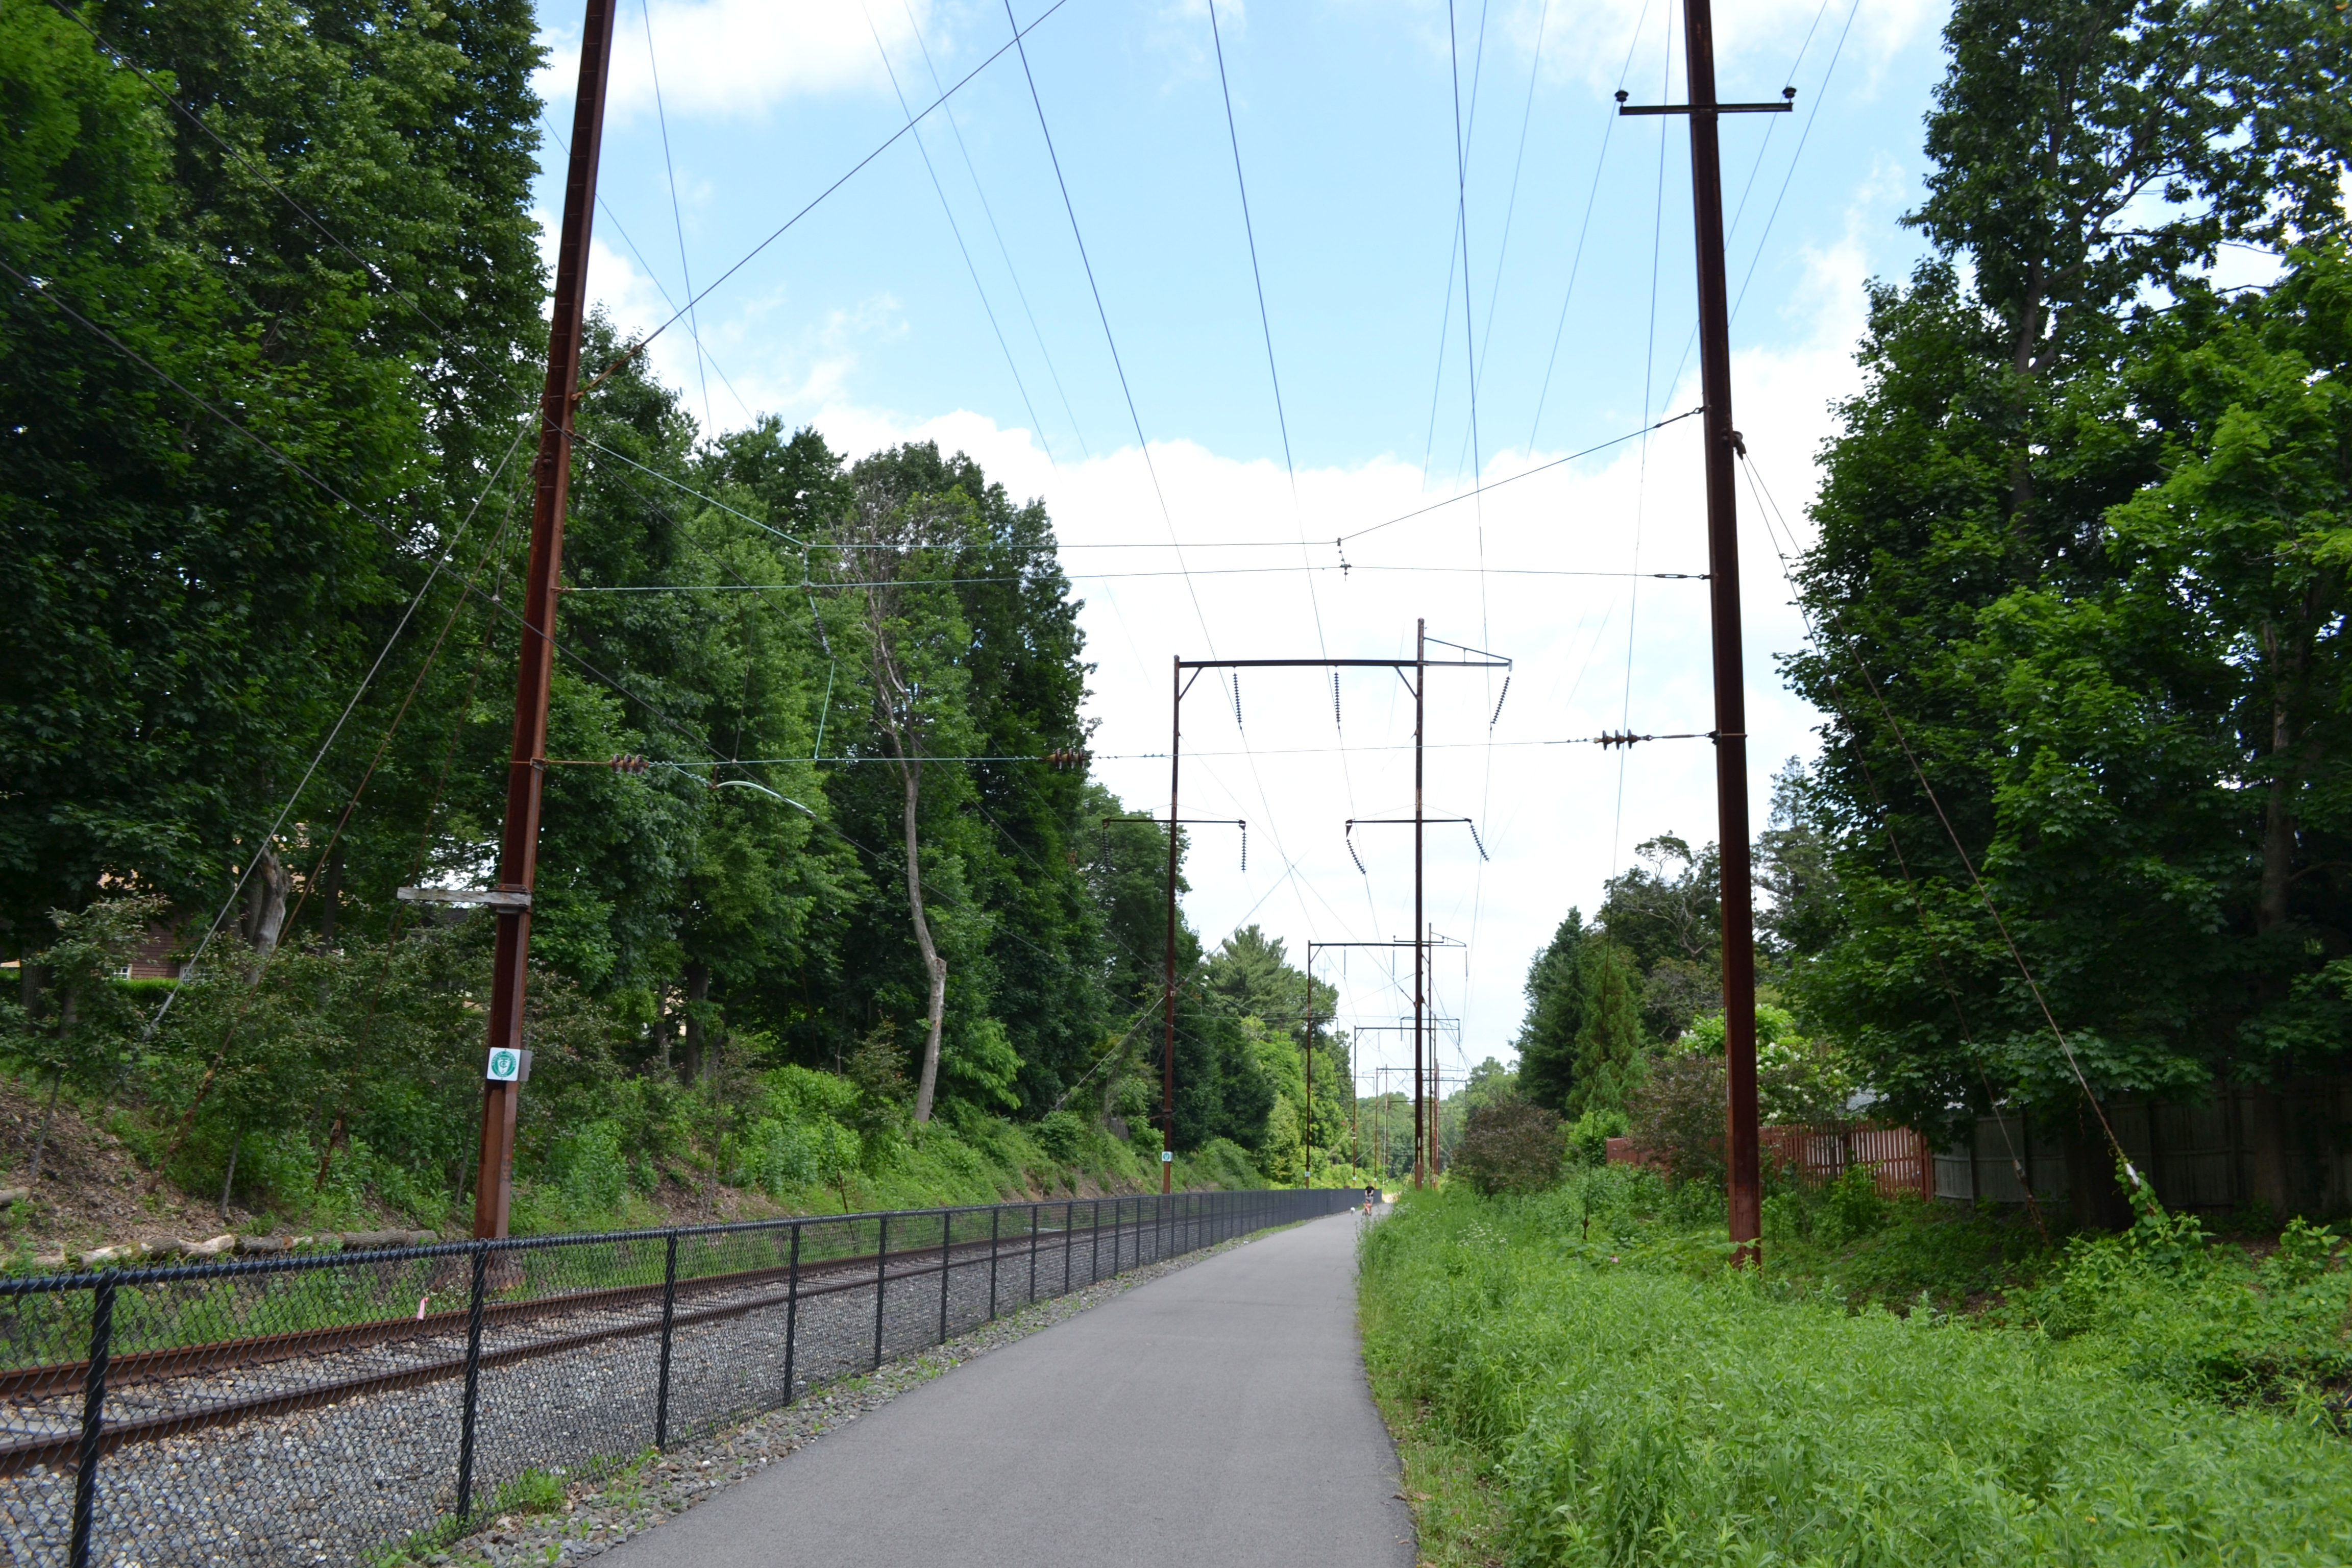 The paved portion of the trail starts alongside an existing segment of tracks